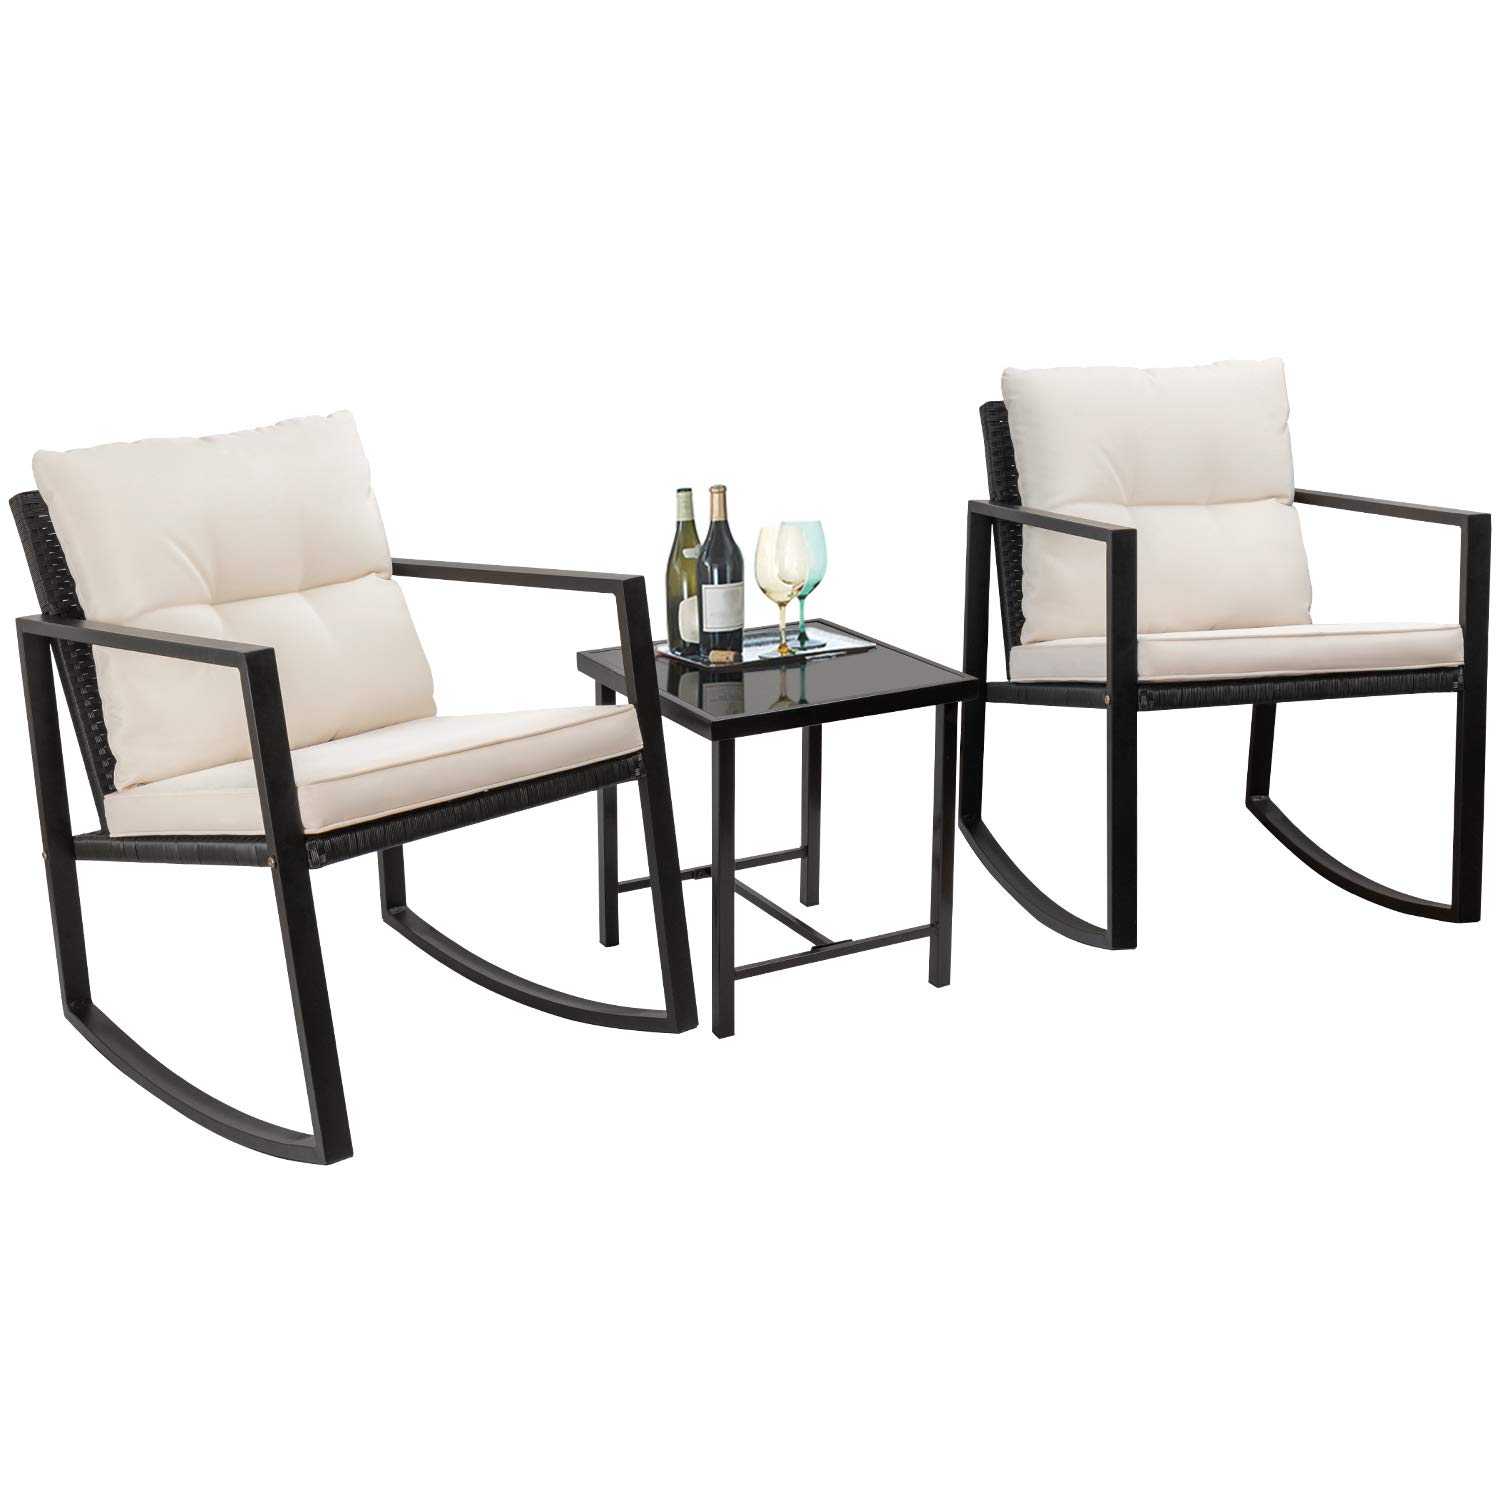 Flamaker 3 Pieces Patio Furniture Set Rocking Wicker Bistro Sets Modern Outdoor Rocking Chair Furniture Sets Cushioned PE Rattan Chairs Conversation Sets with Coffee Table Black